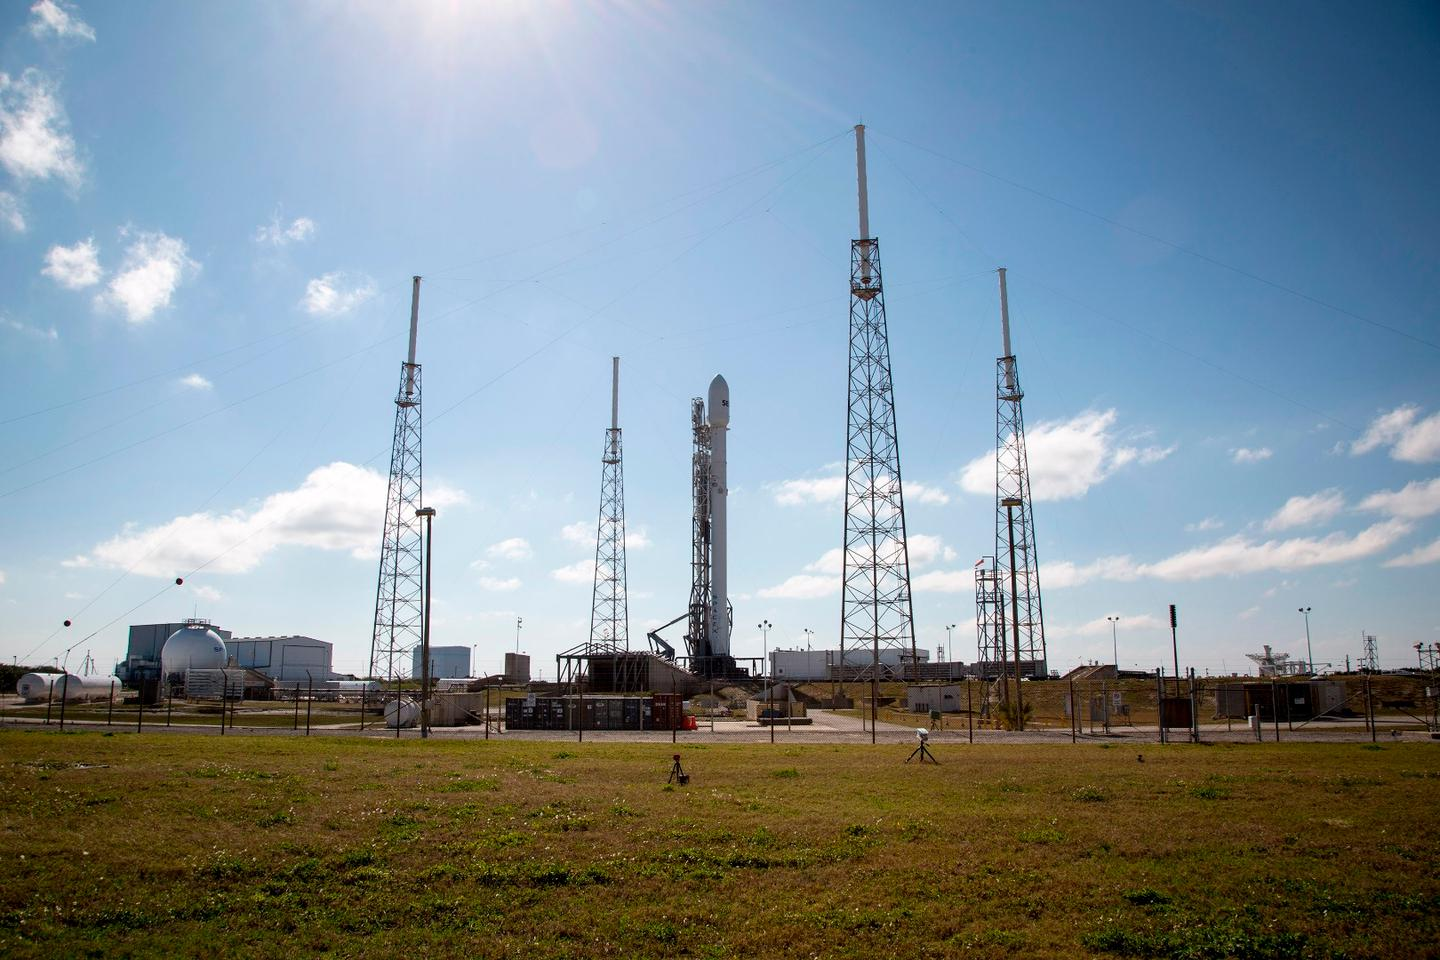 SES-9 on the launch pad